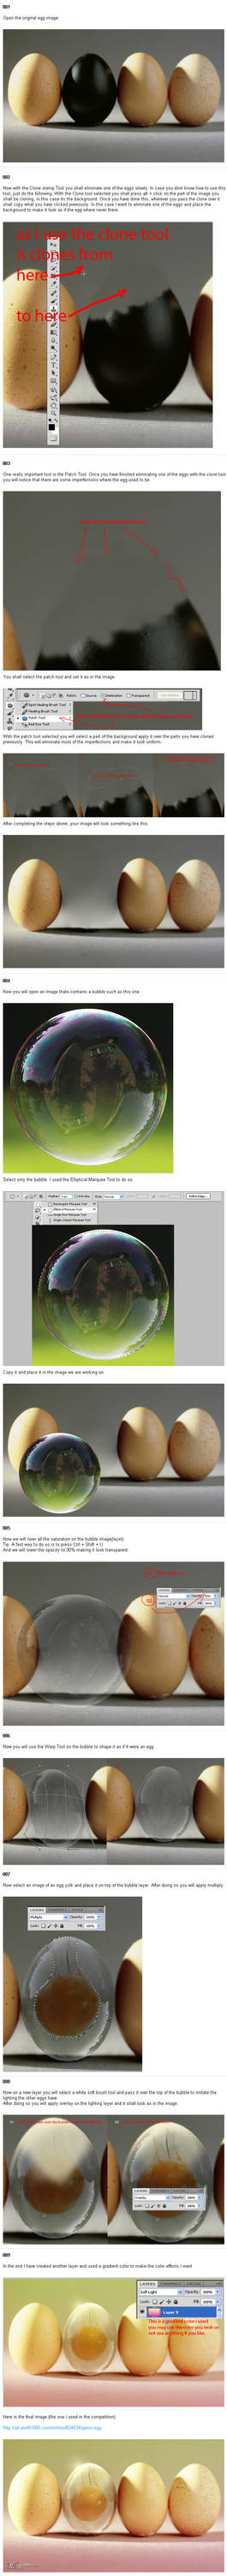 Glass Egg Tutorial - Photoshop